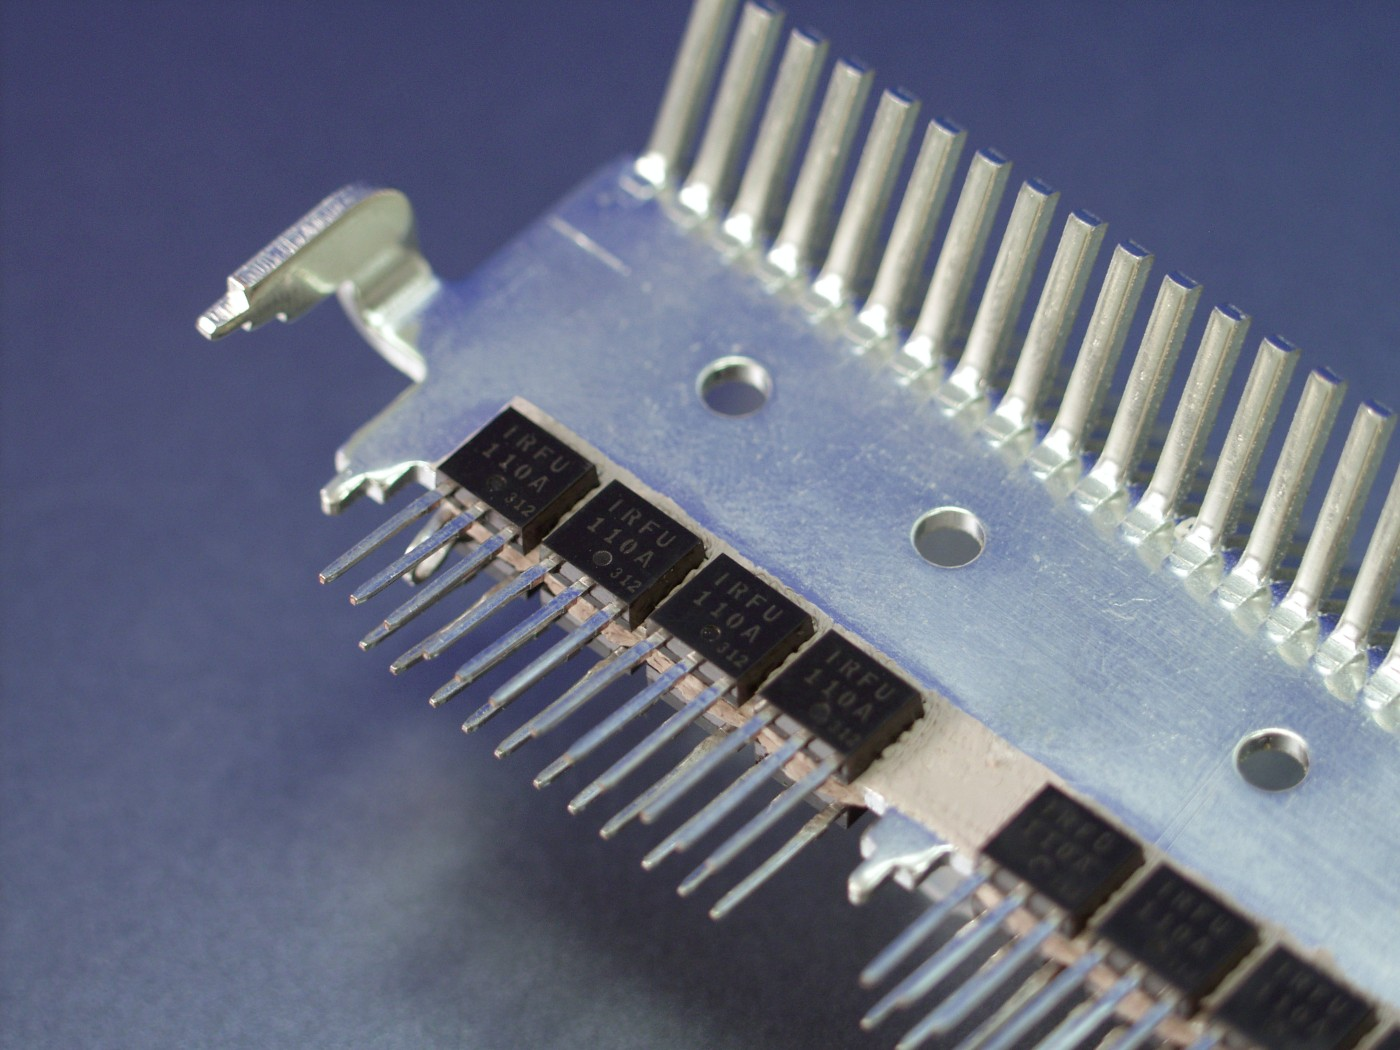 Photo of Bergquist Bond Ply thermally conductive adhesive tape used as interface material between a row of power transistors on a metal heatsink